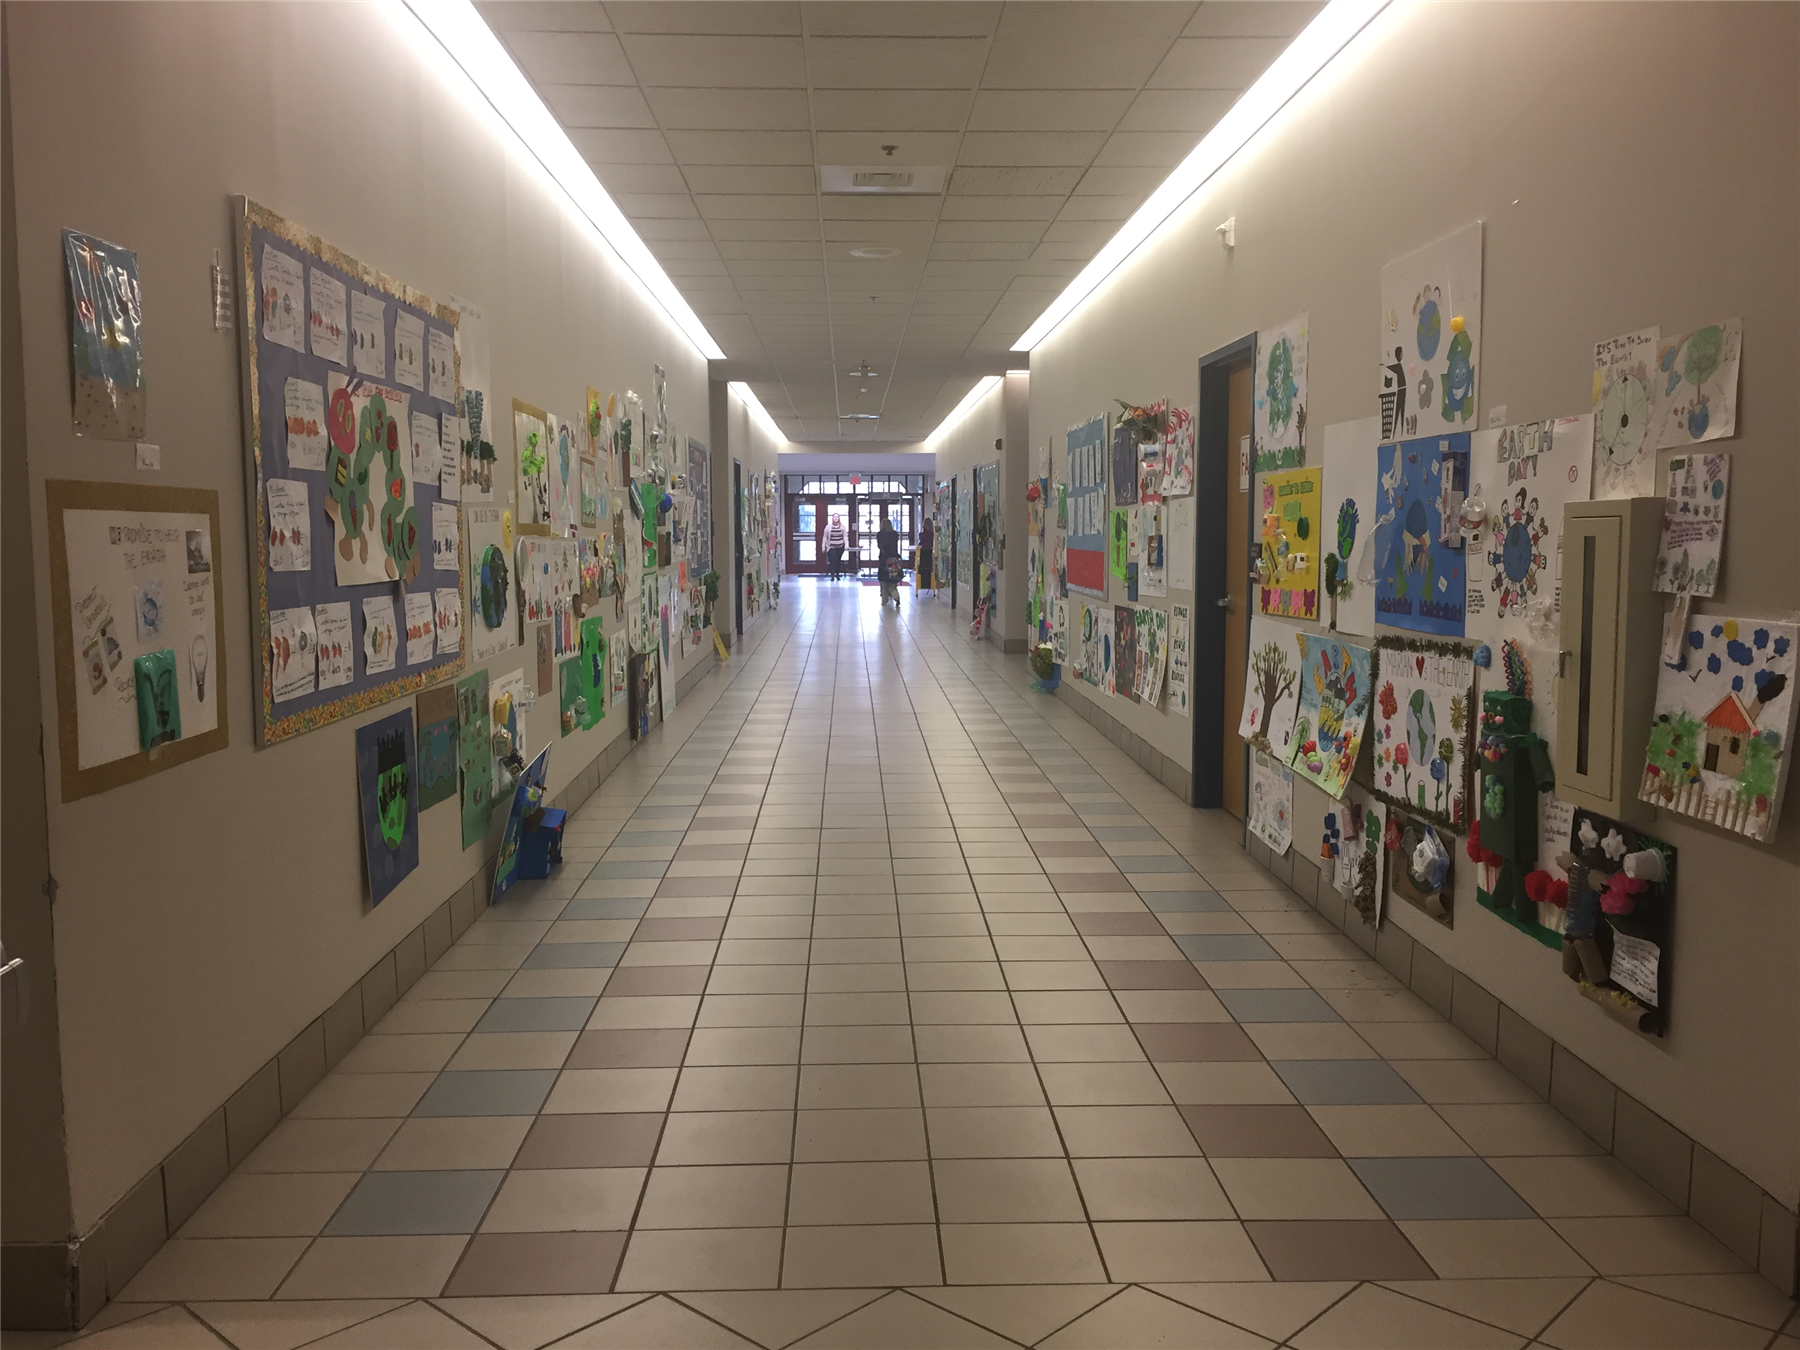 Earth Day posters in hallway